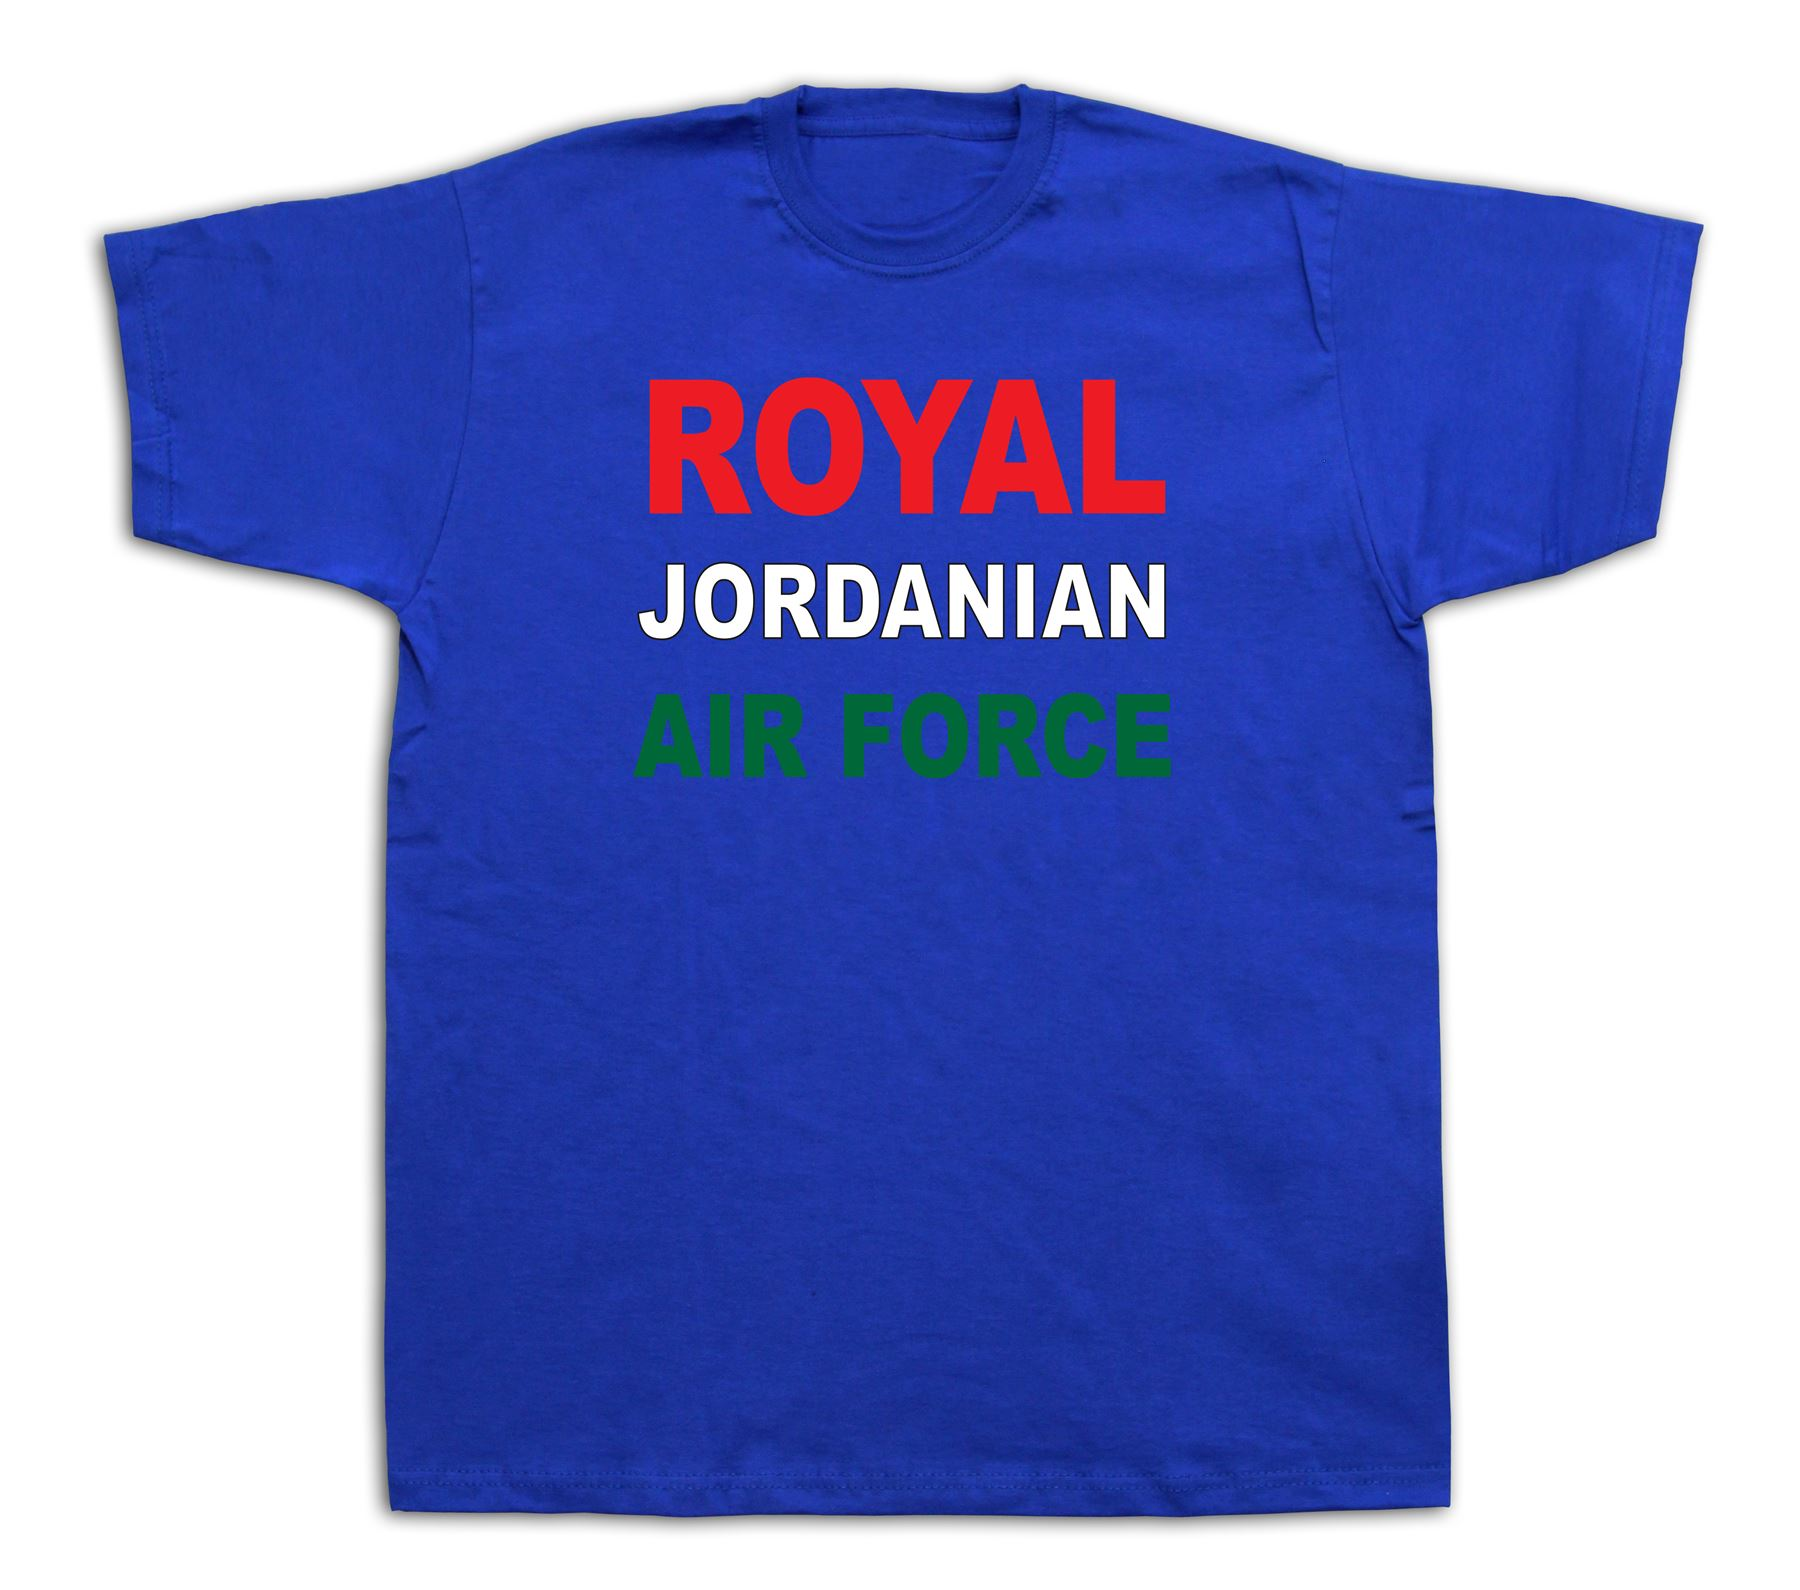 Jordanian royal air force pilot plane honor t shirt middle for Jordan royal 1 shirt